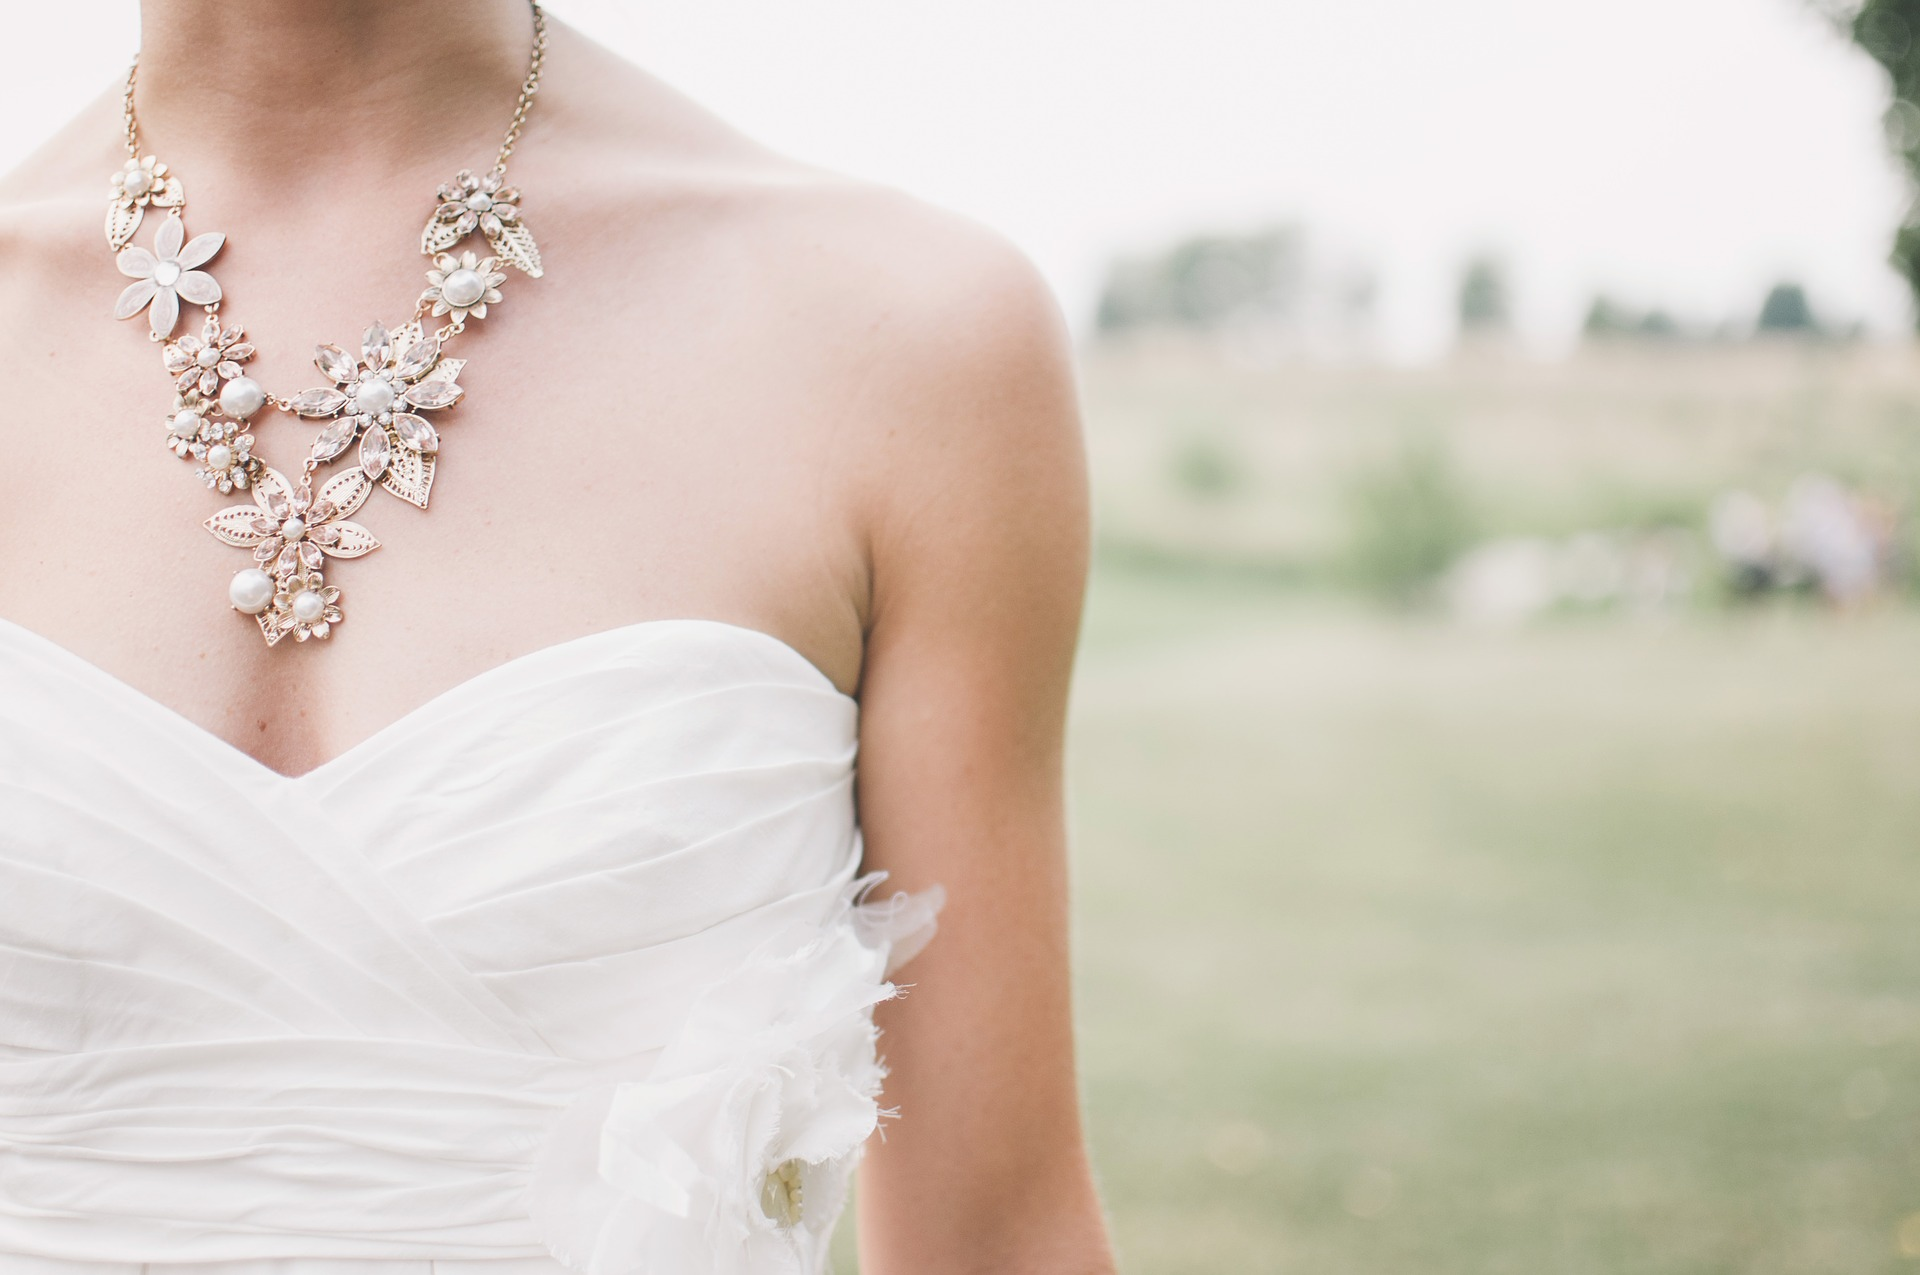 Wedding Jewelry.jpg